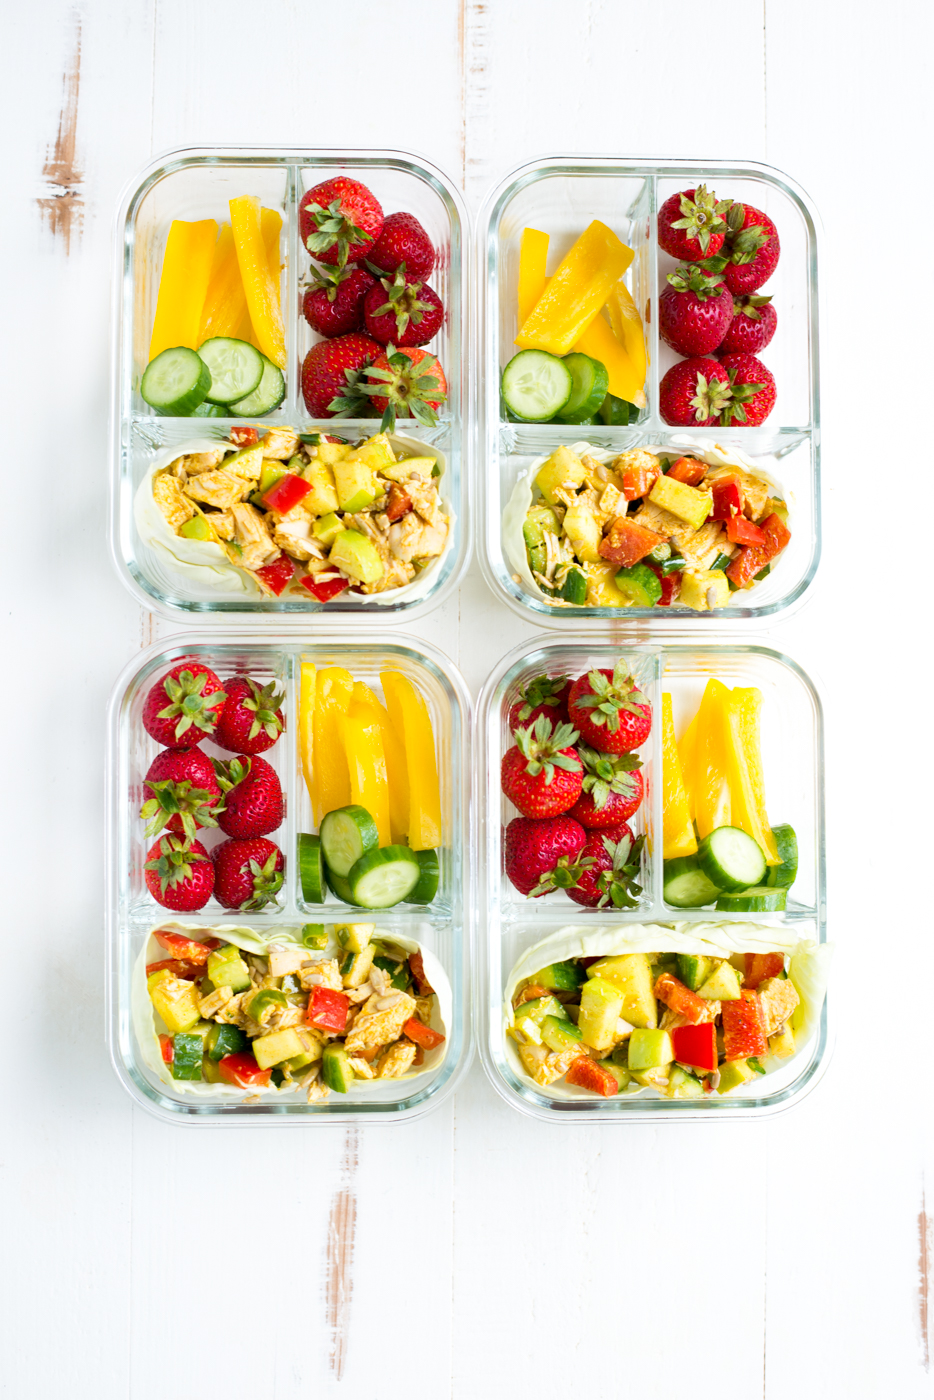 Meal Prep Golden Glow Chicken Salad is an easy, healthy make-ahead meal that you can prep ahead and take on the go. Make it with chicken, or any protein you like! #realfoodwholelife #realfoodwholeliferecipe #recipe #mealprep #whole30 #whole30recipe #paleo #paleorecipe #glutenfree #dairyfree #healthy #healthyrecipe #easyrecipe #quickrecipe #lunch #mayofree #nutfree #eggfree